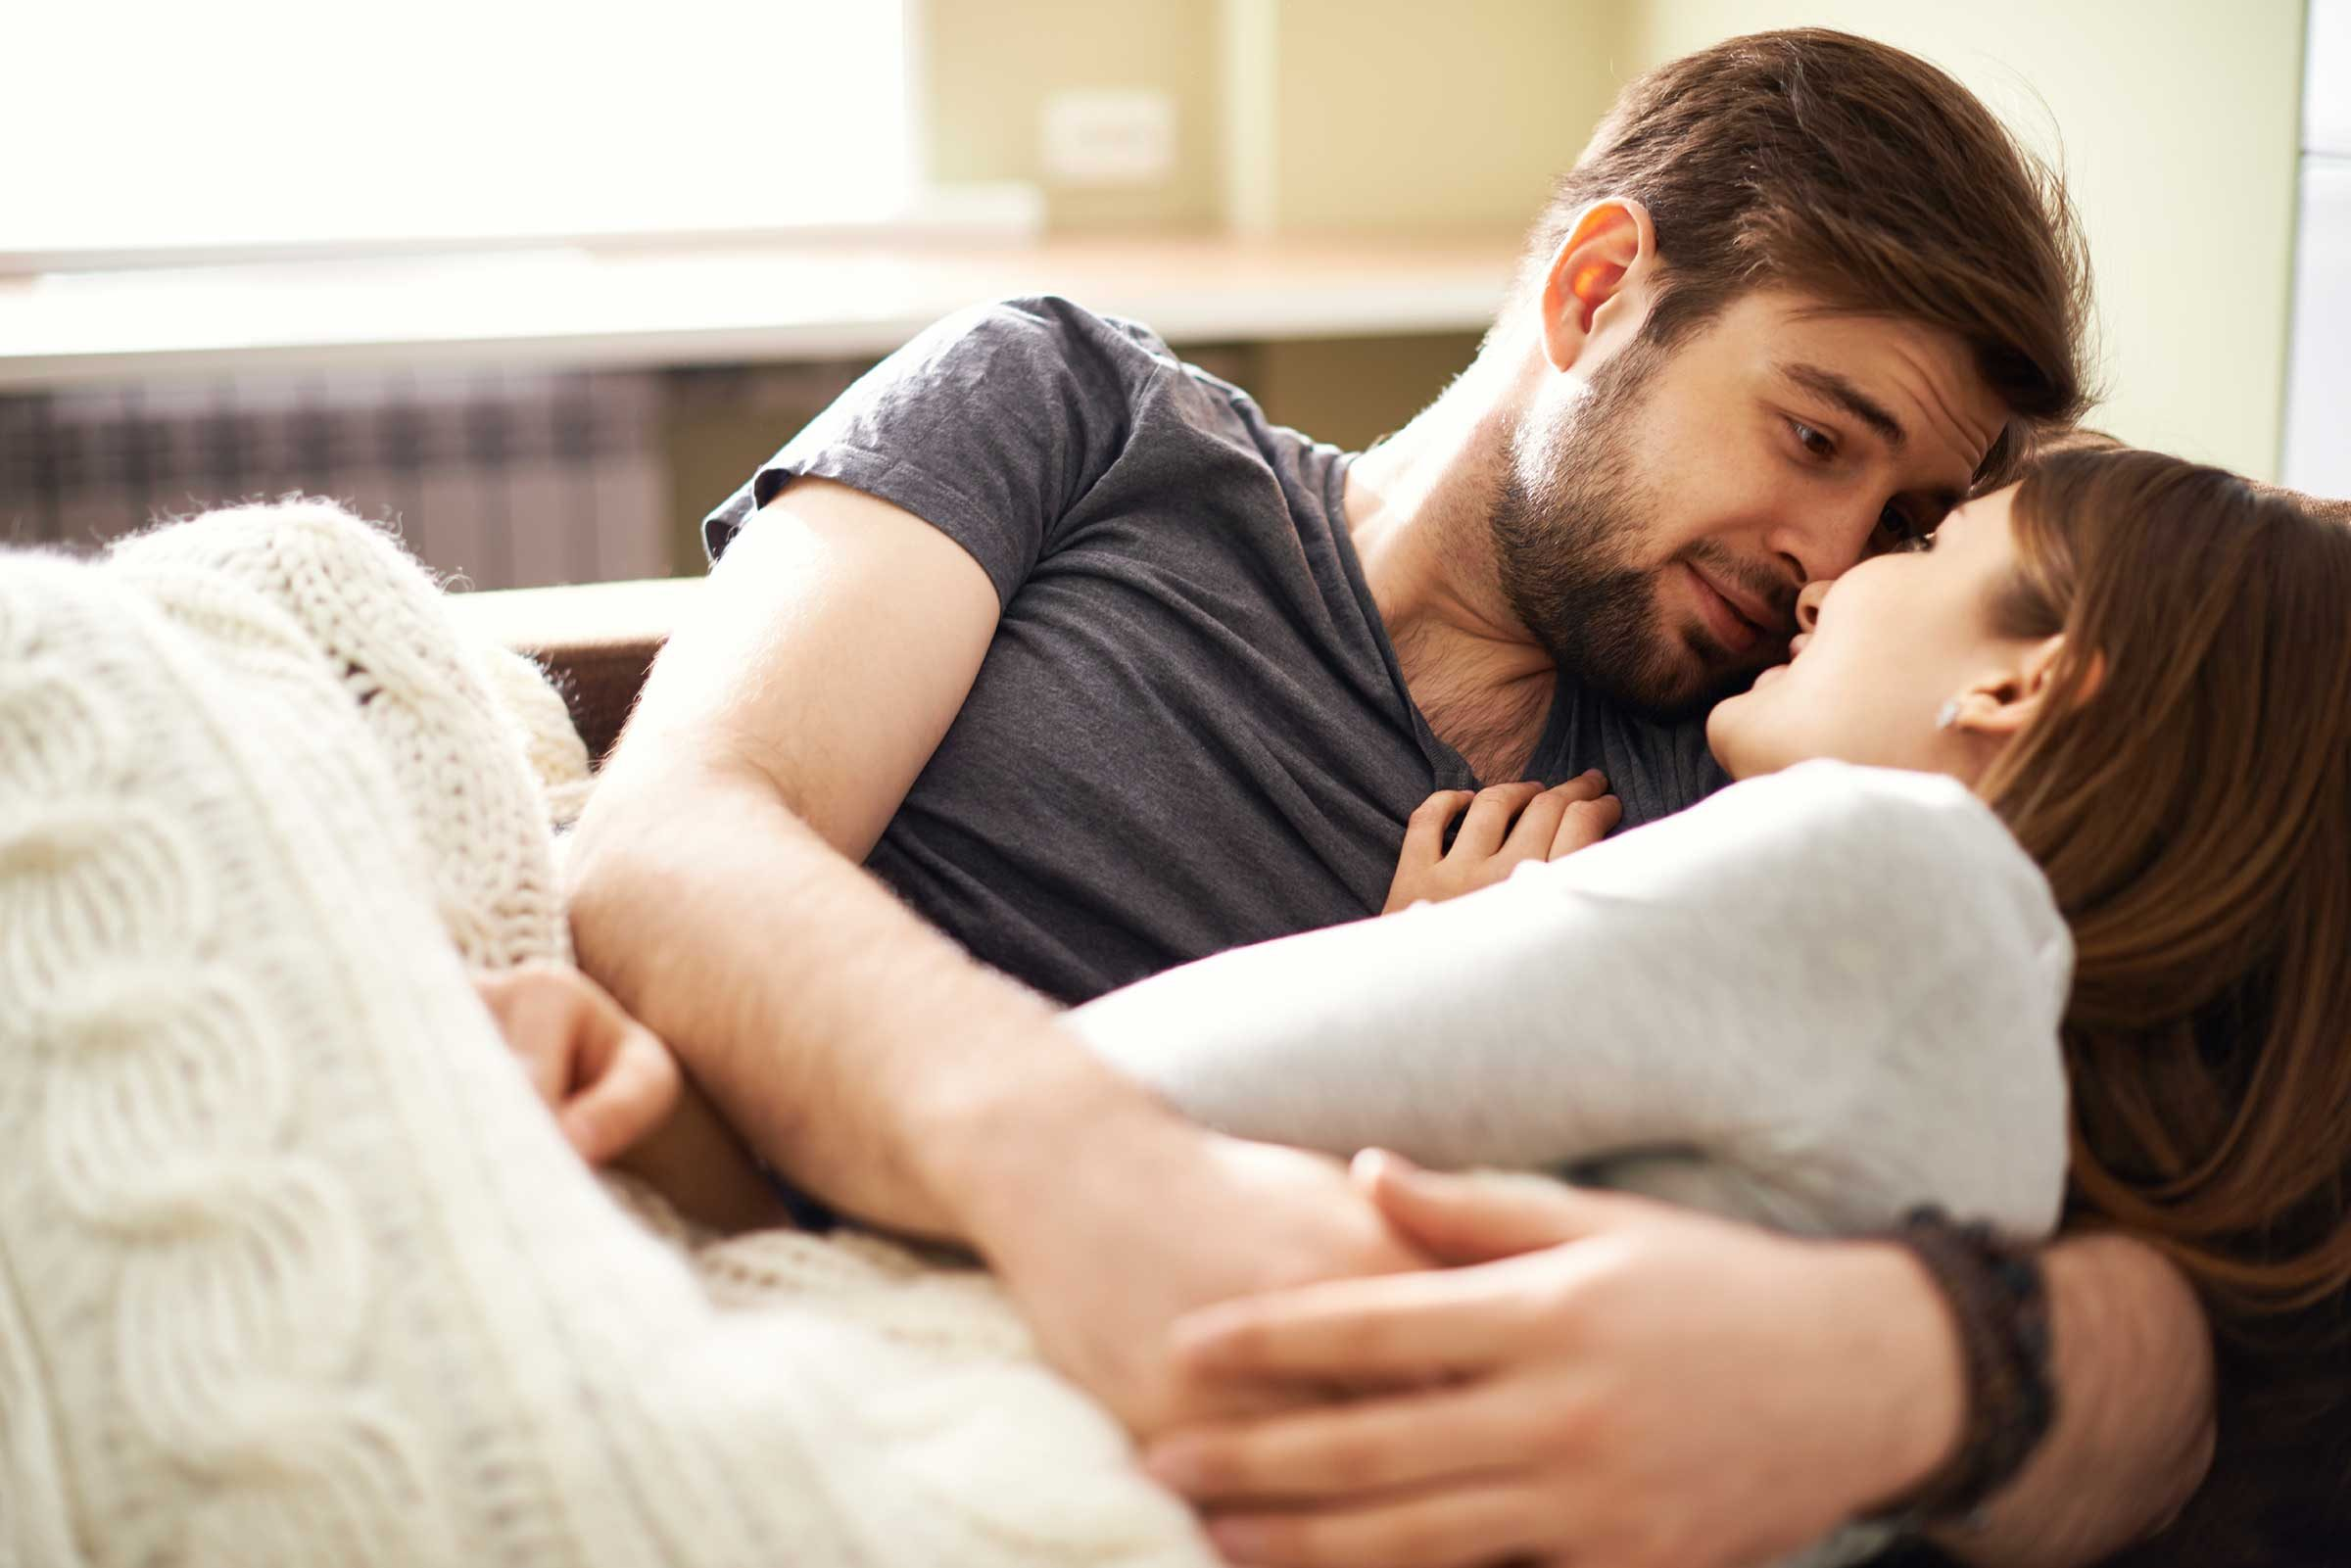 sexual inhancing drugs for women